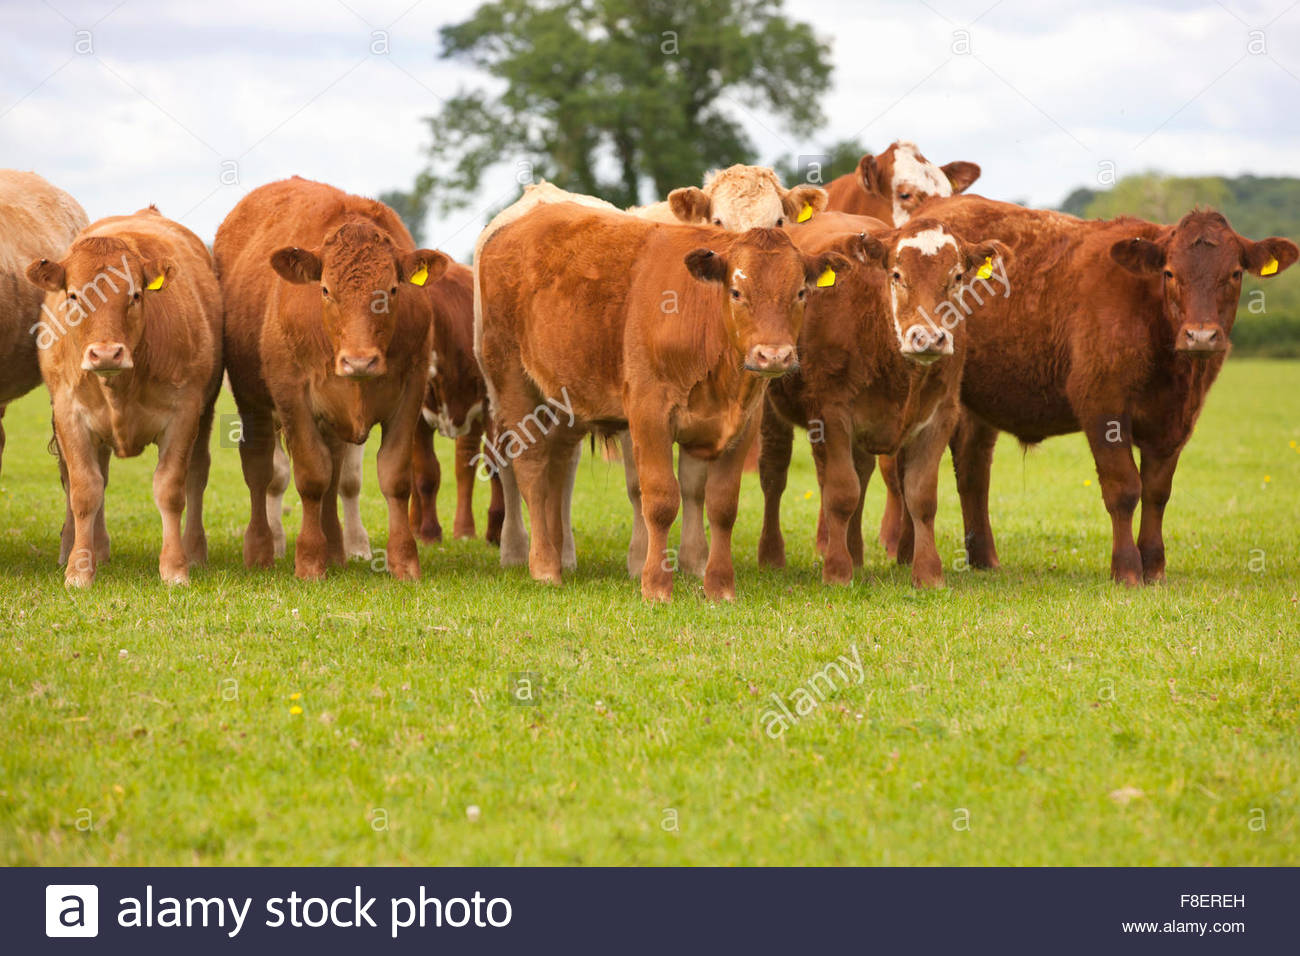 Portrait of herd of brown cows in rural field - Stock Image